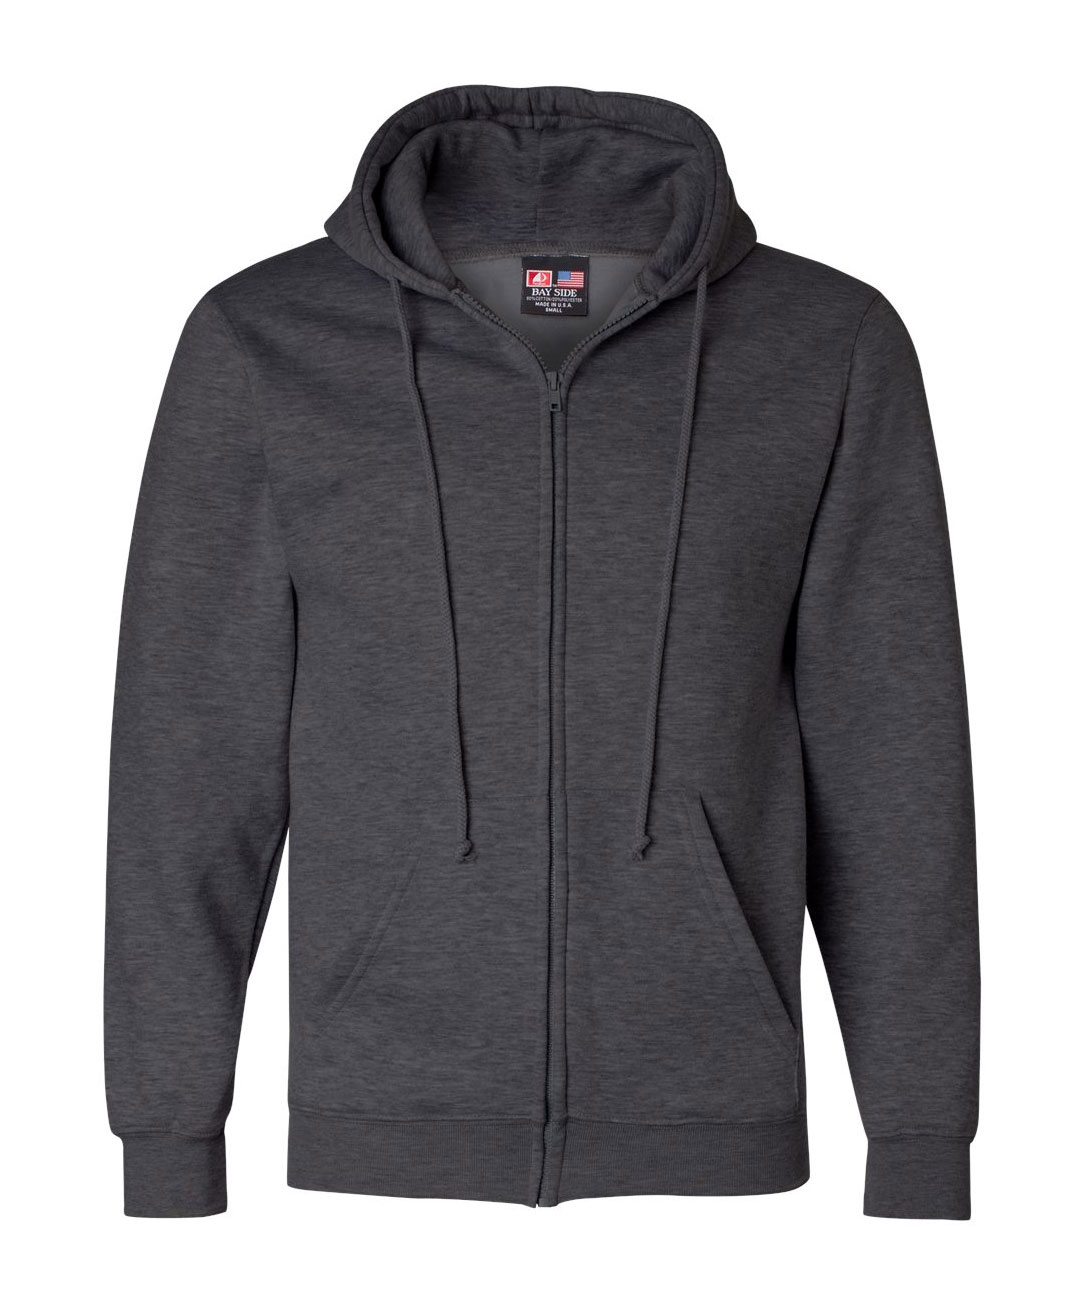 USA Made Full-Zip Hooded Sweatshirt